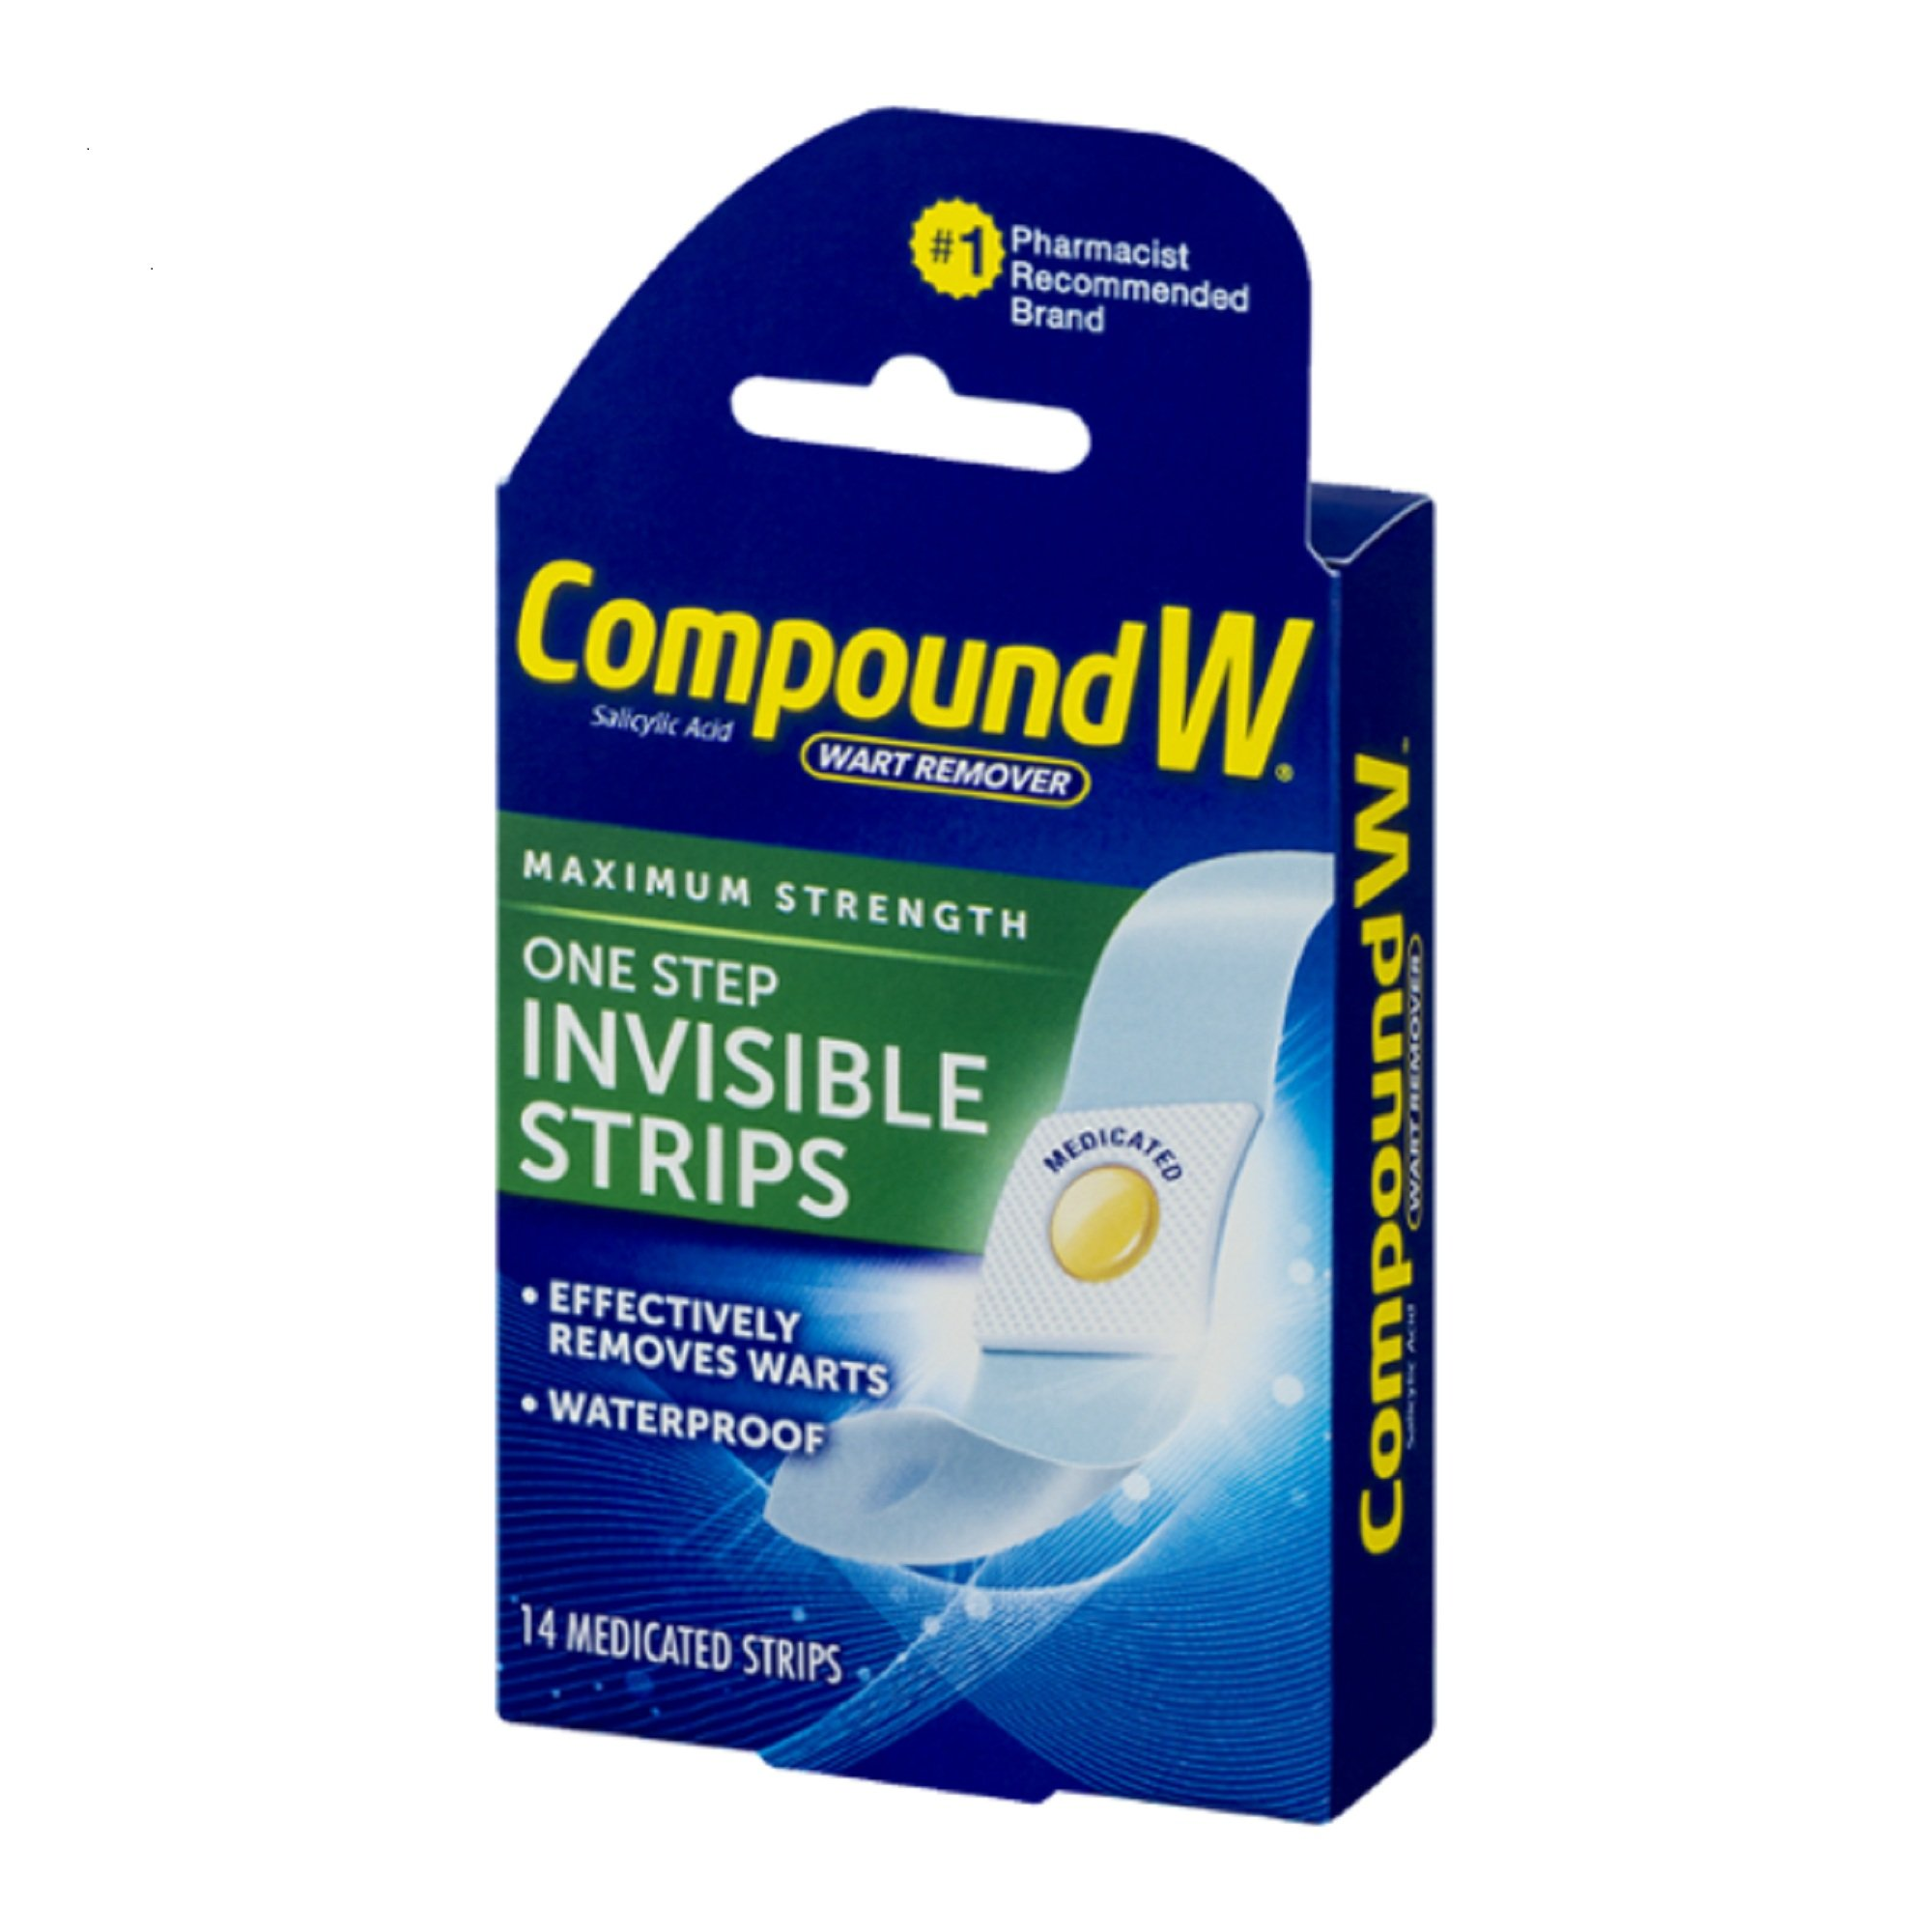 Compound W One Step Invisible Strips 14 Each (Pack of 3) by Compound W